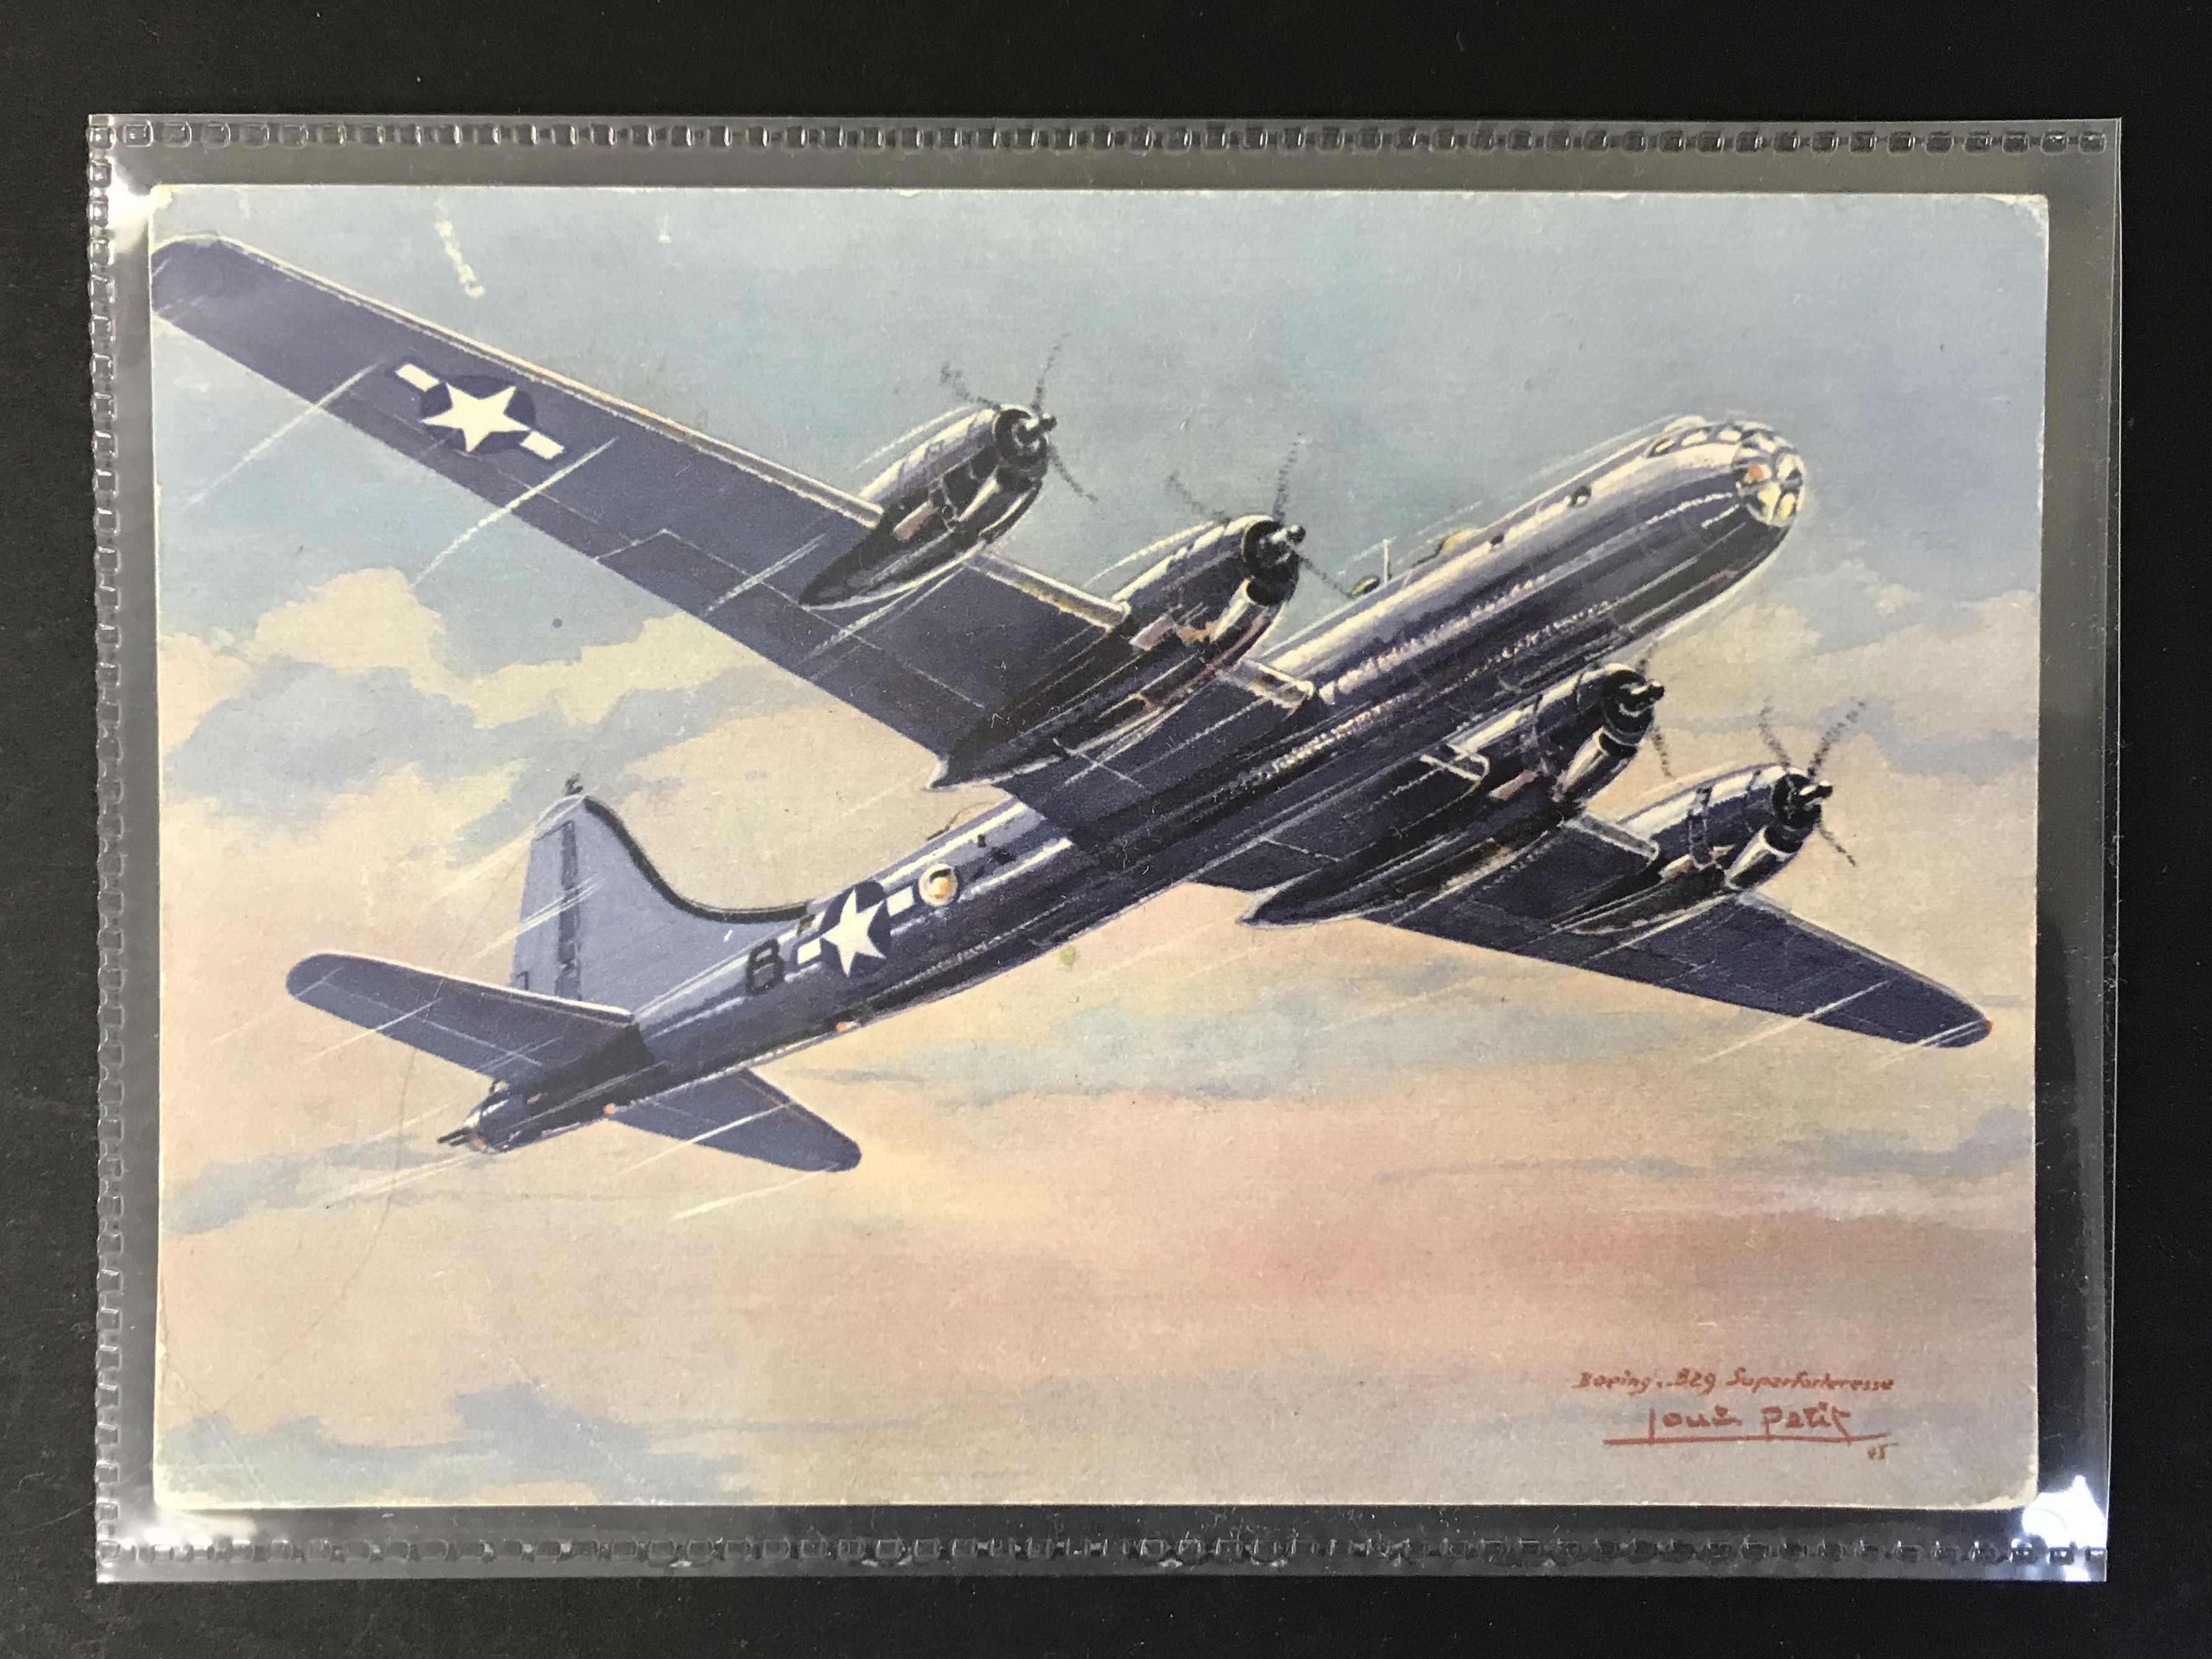 GROUP OF TWELVE FRENCH PLANES RELATED POSTCARDS - VARIOUS SERIES - Image 12 of 14